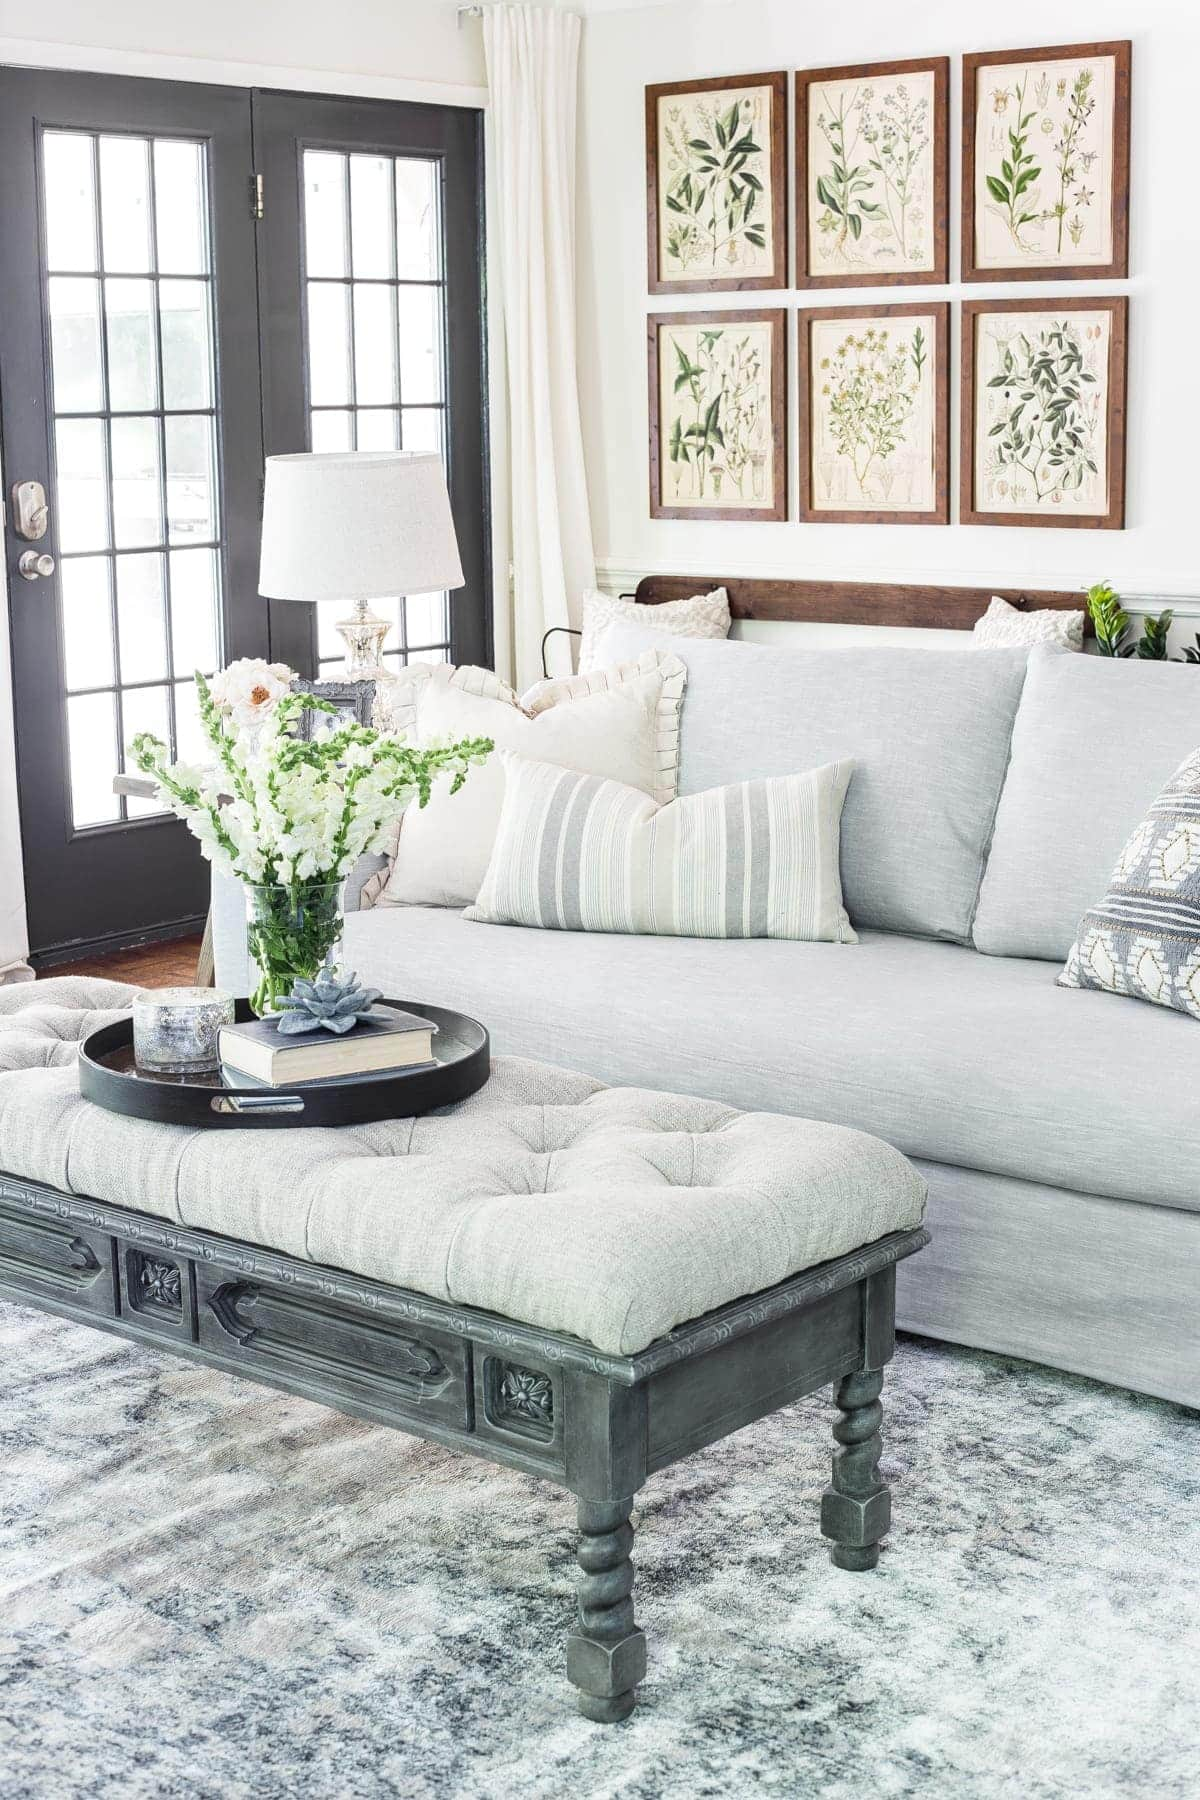 Neutral modern farmhouse with IKEA Farlov slipcover